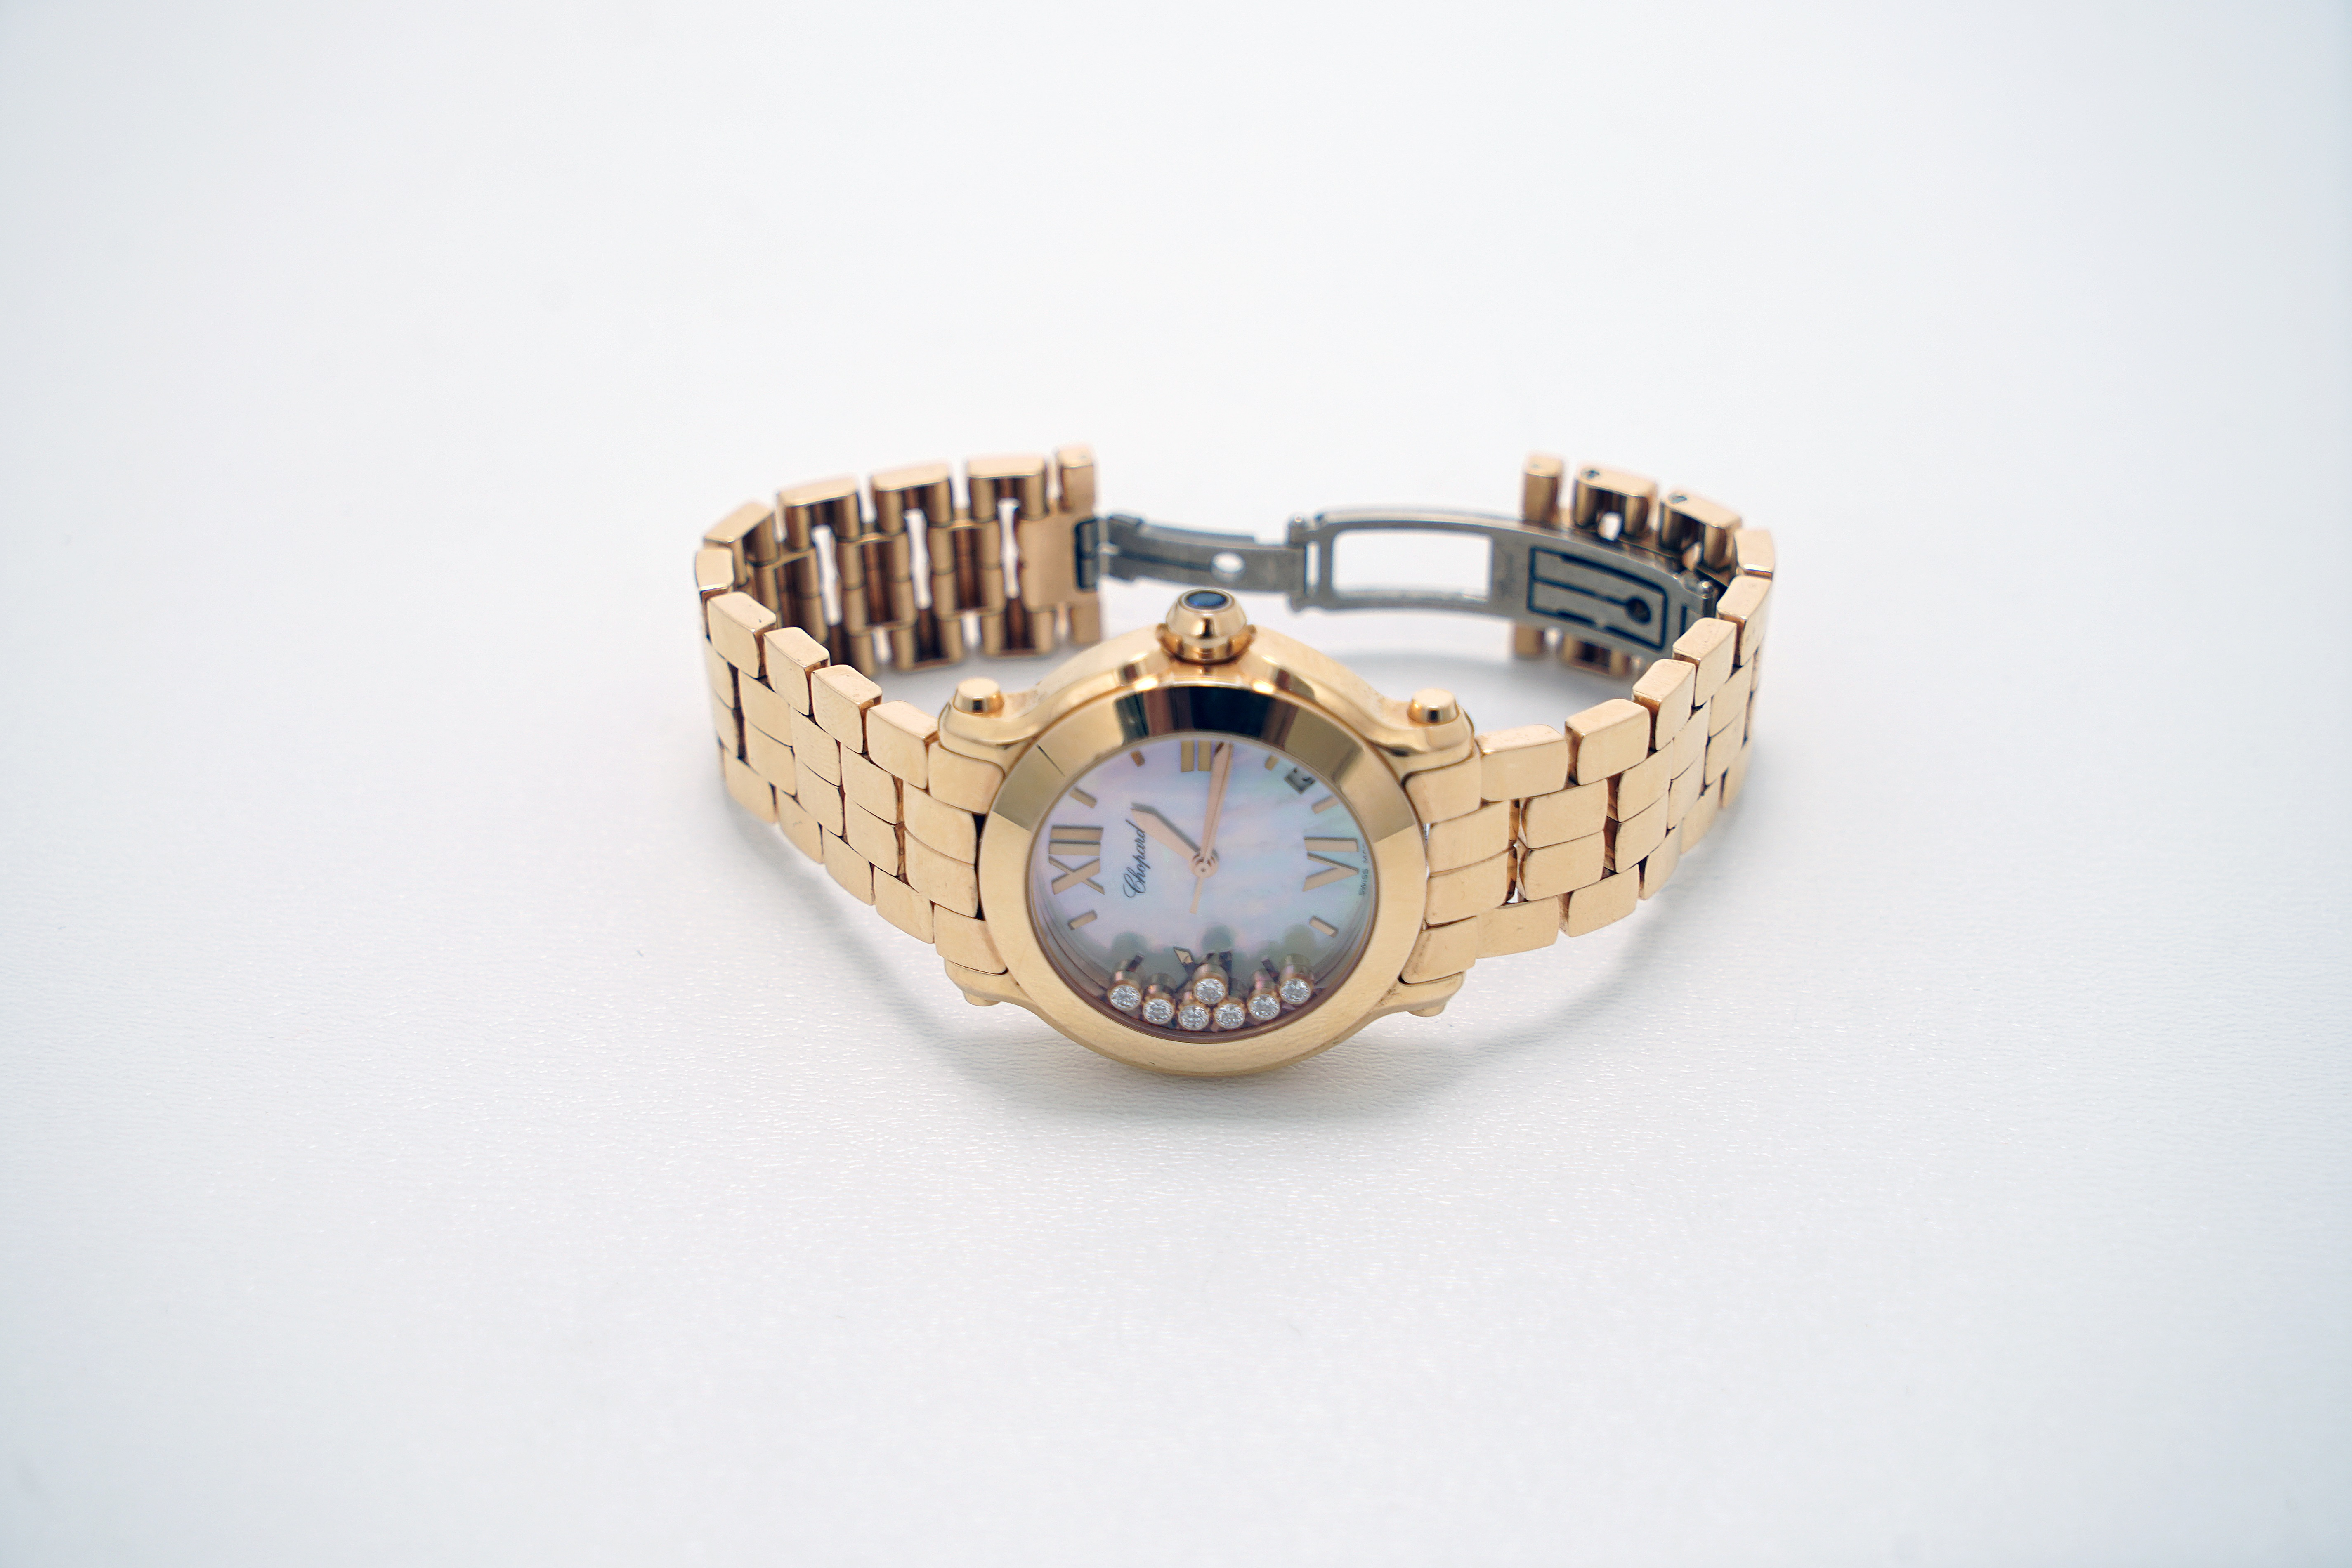 A Lady's 18K Rotgold Chopard Happy Sport Wristwatch with 1 Sapphire and 7 Diamonds - Image 7 of 10